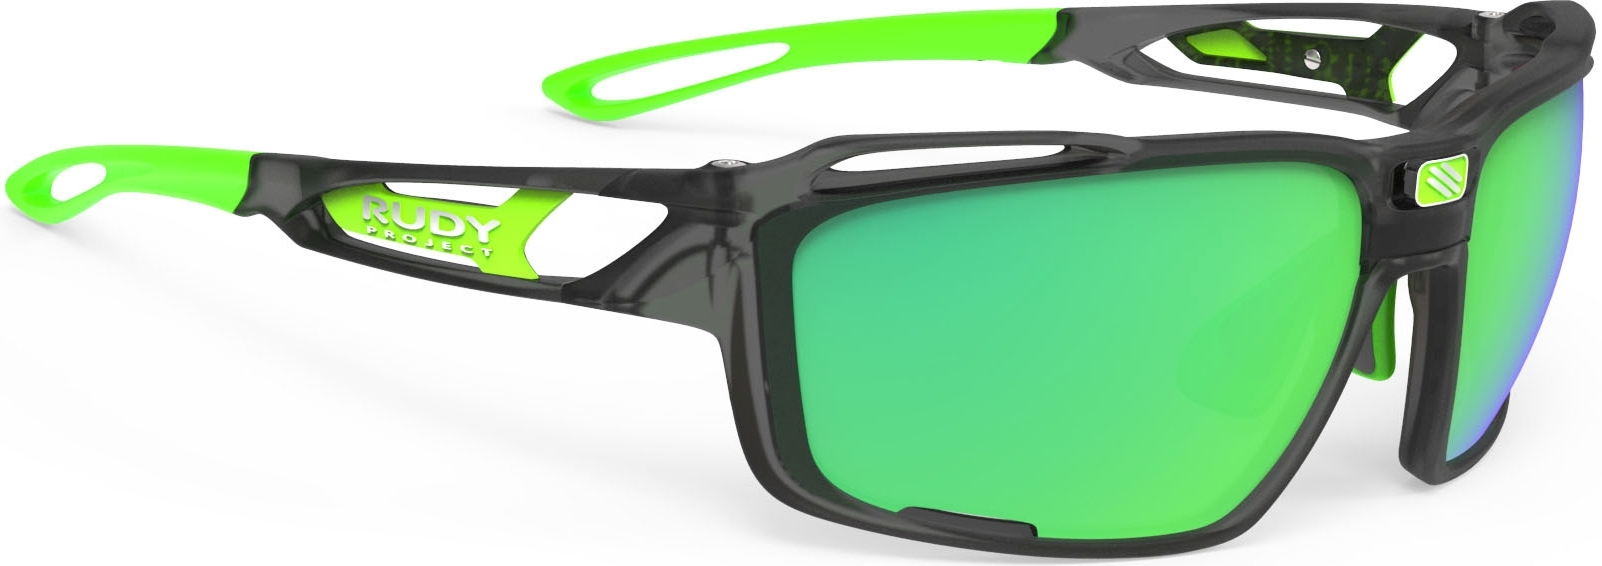 Rudy Project Sintryx - ice graphite matte/polar 3FX HDR multilaser green uni